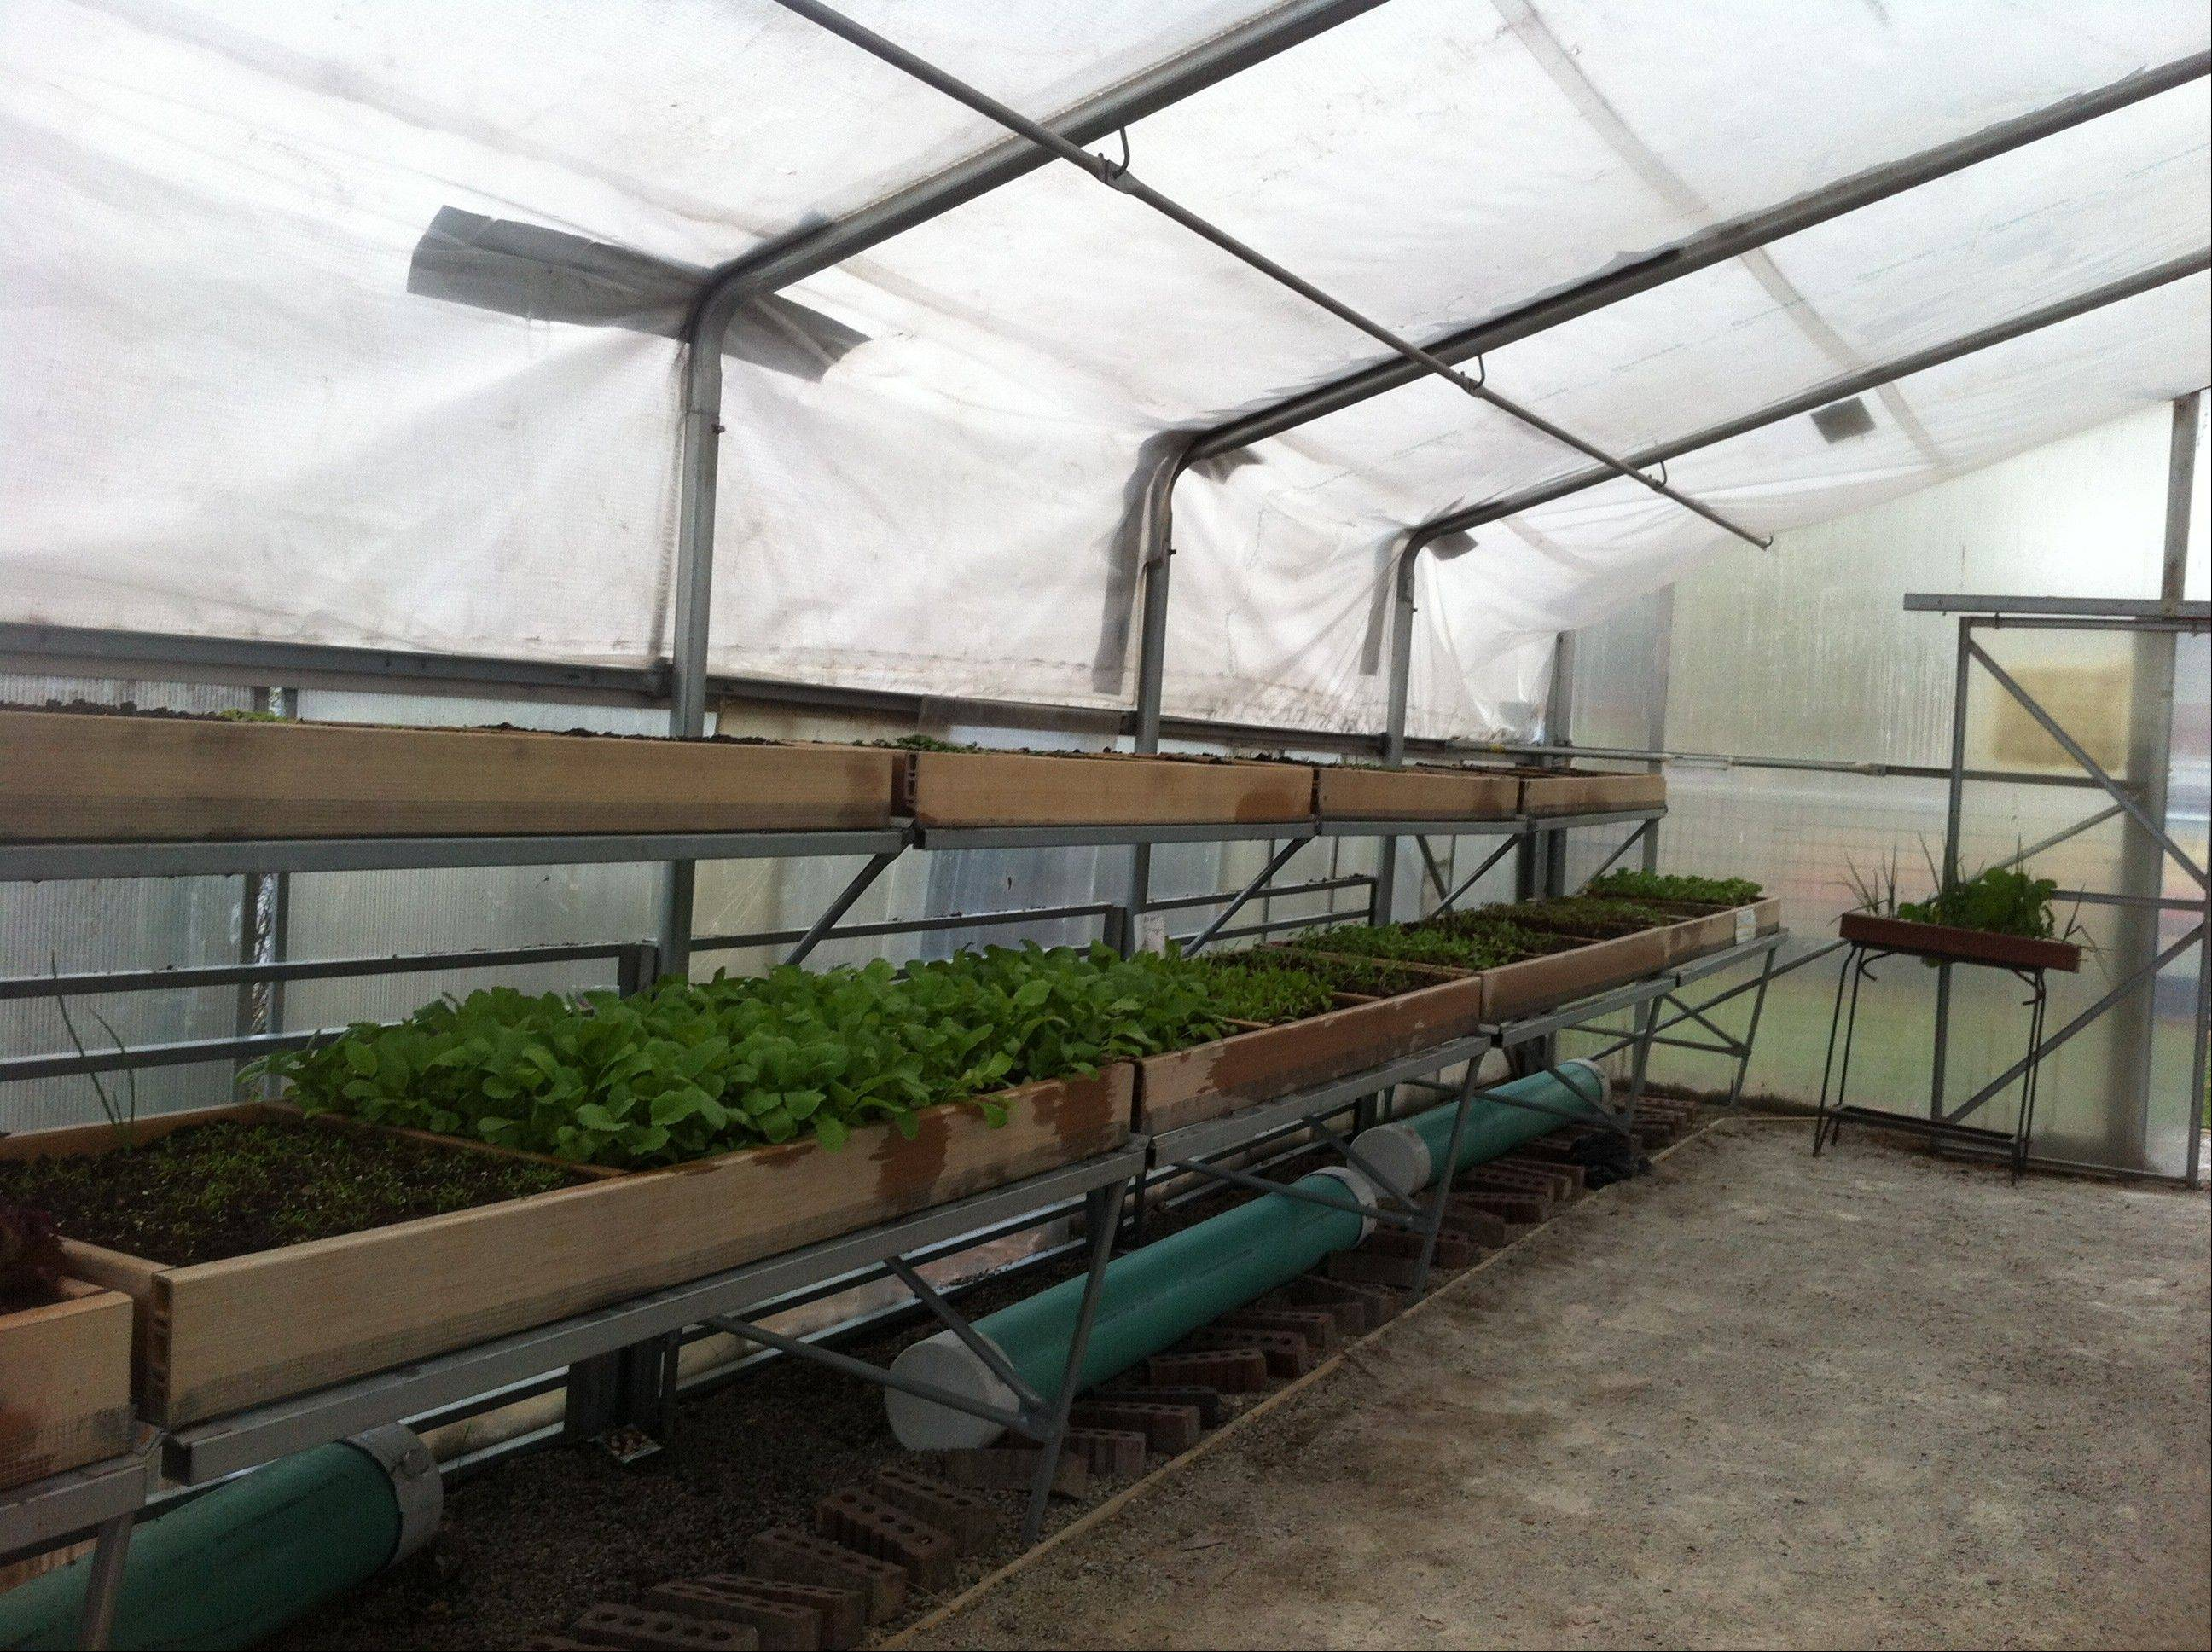 The Miner School Greenhouse is home to several types of lettuce and other vegetables, which will be donated to the Wheeling Food Pantry before the holidays.